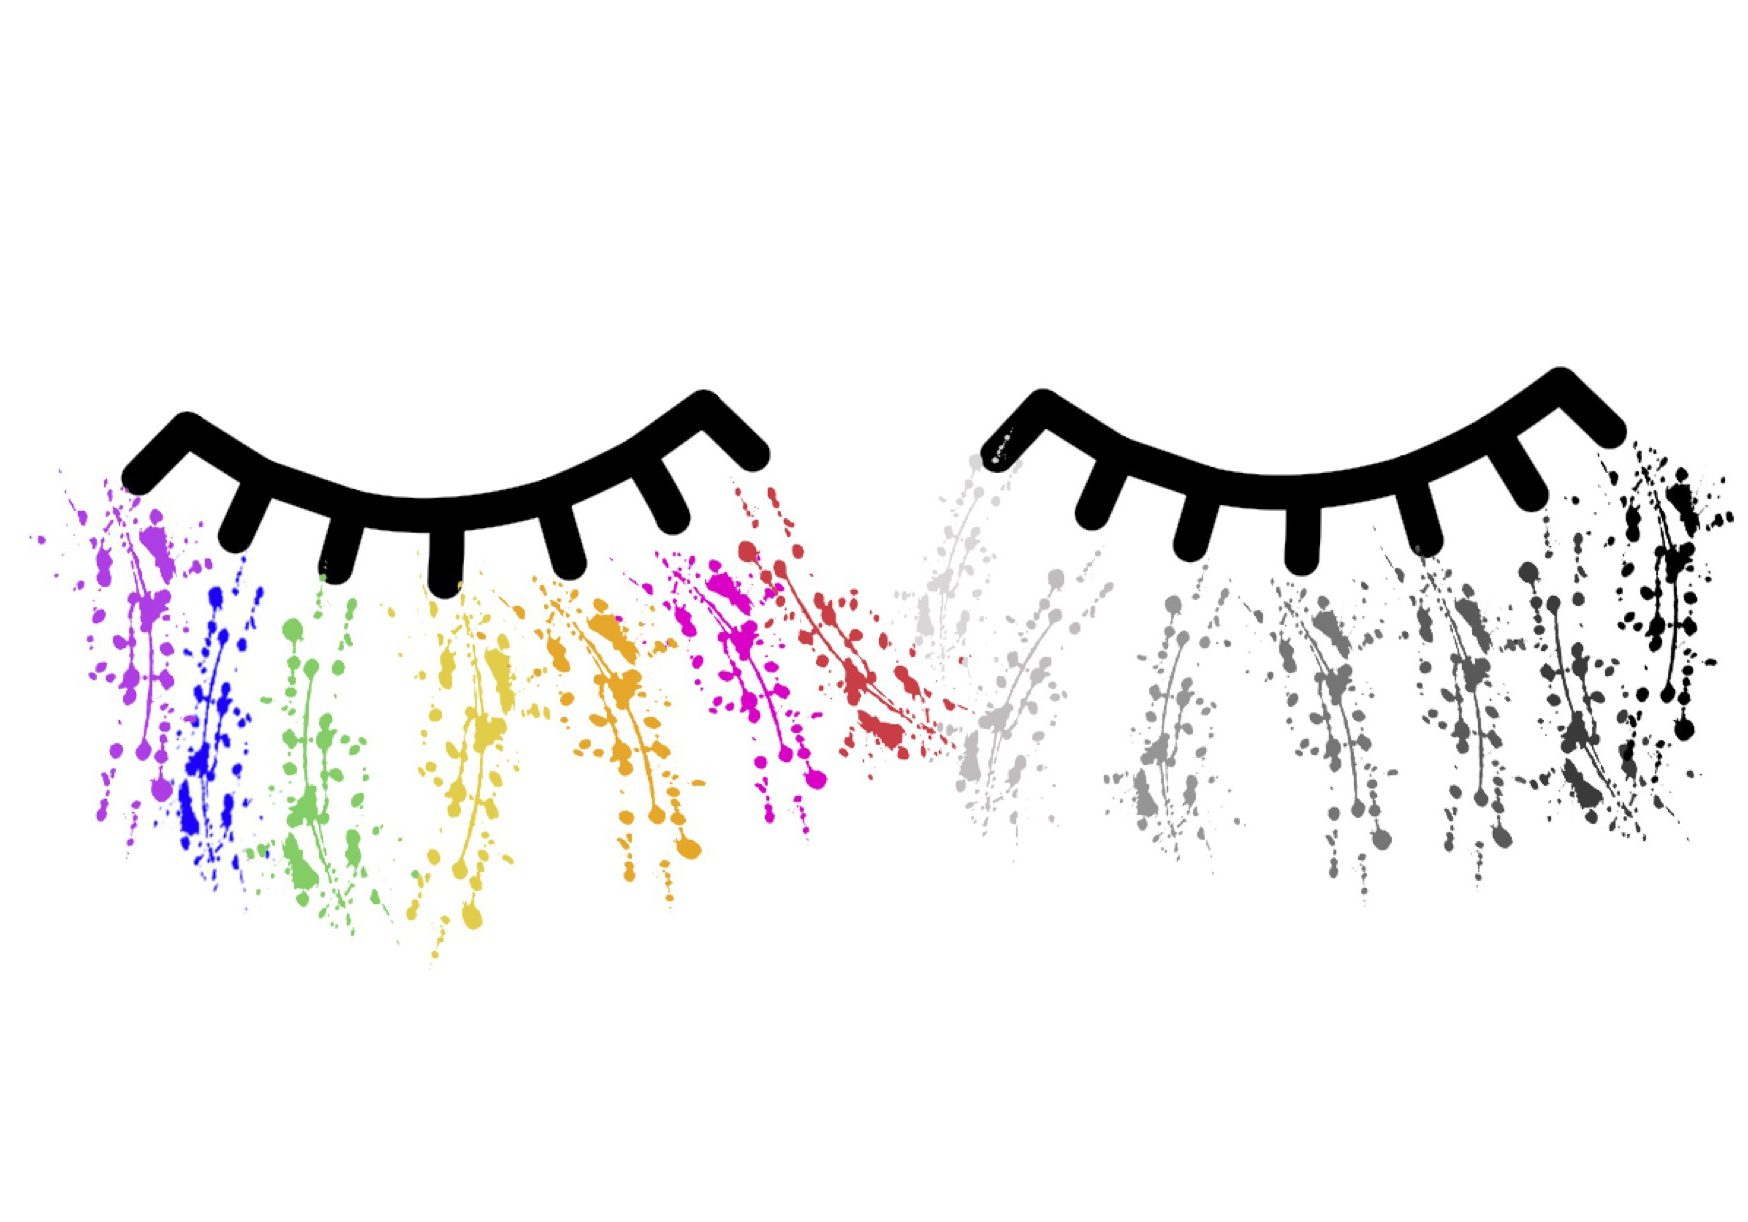 Living with color blindness